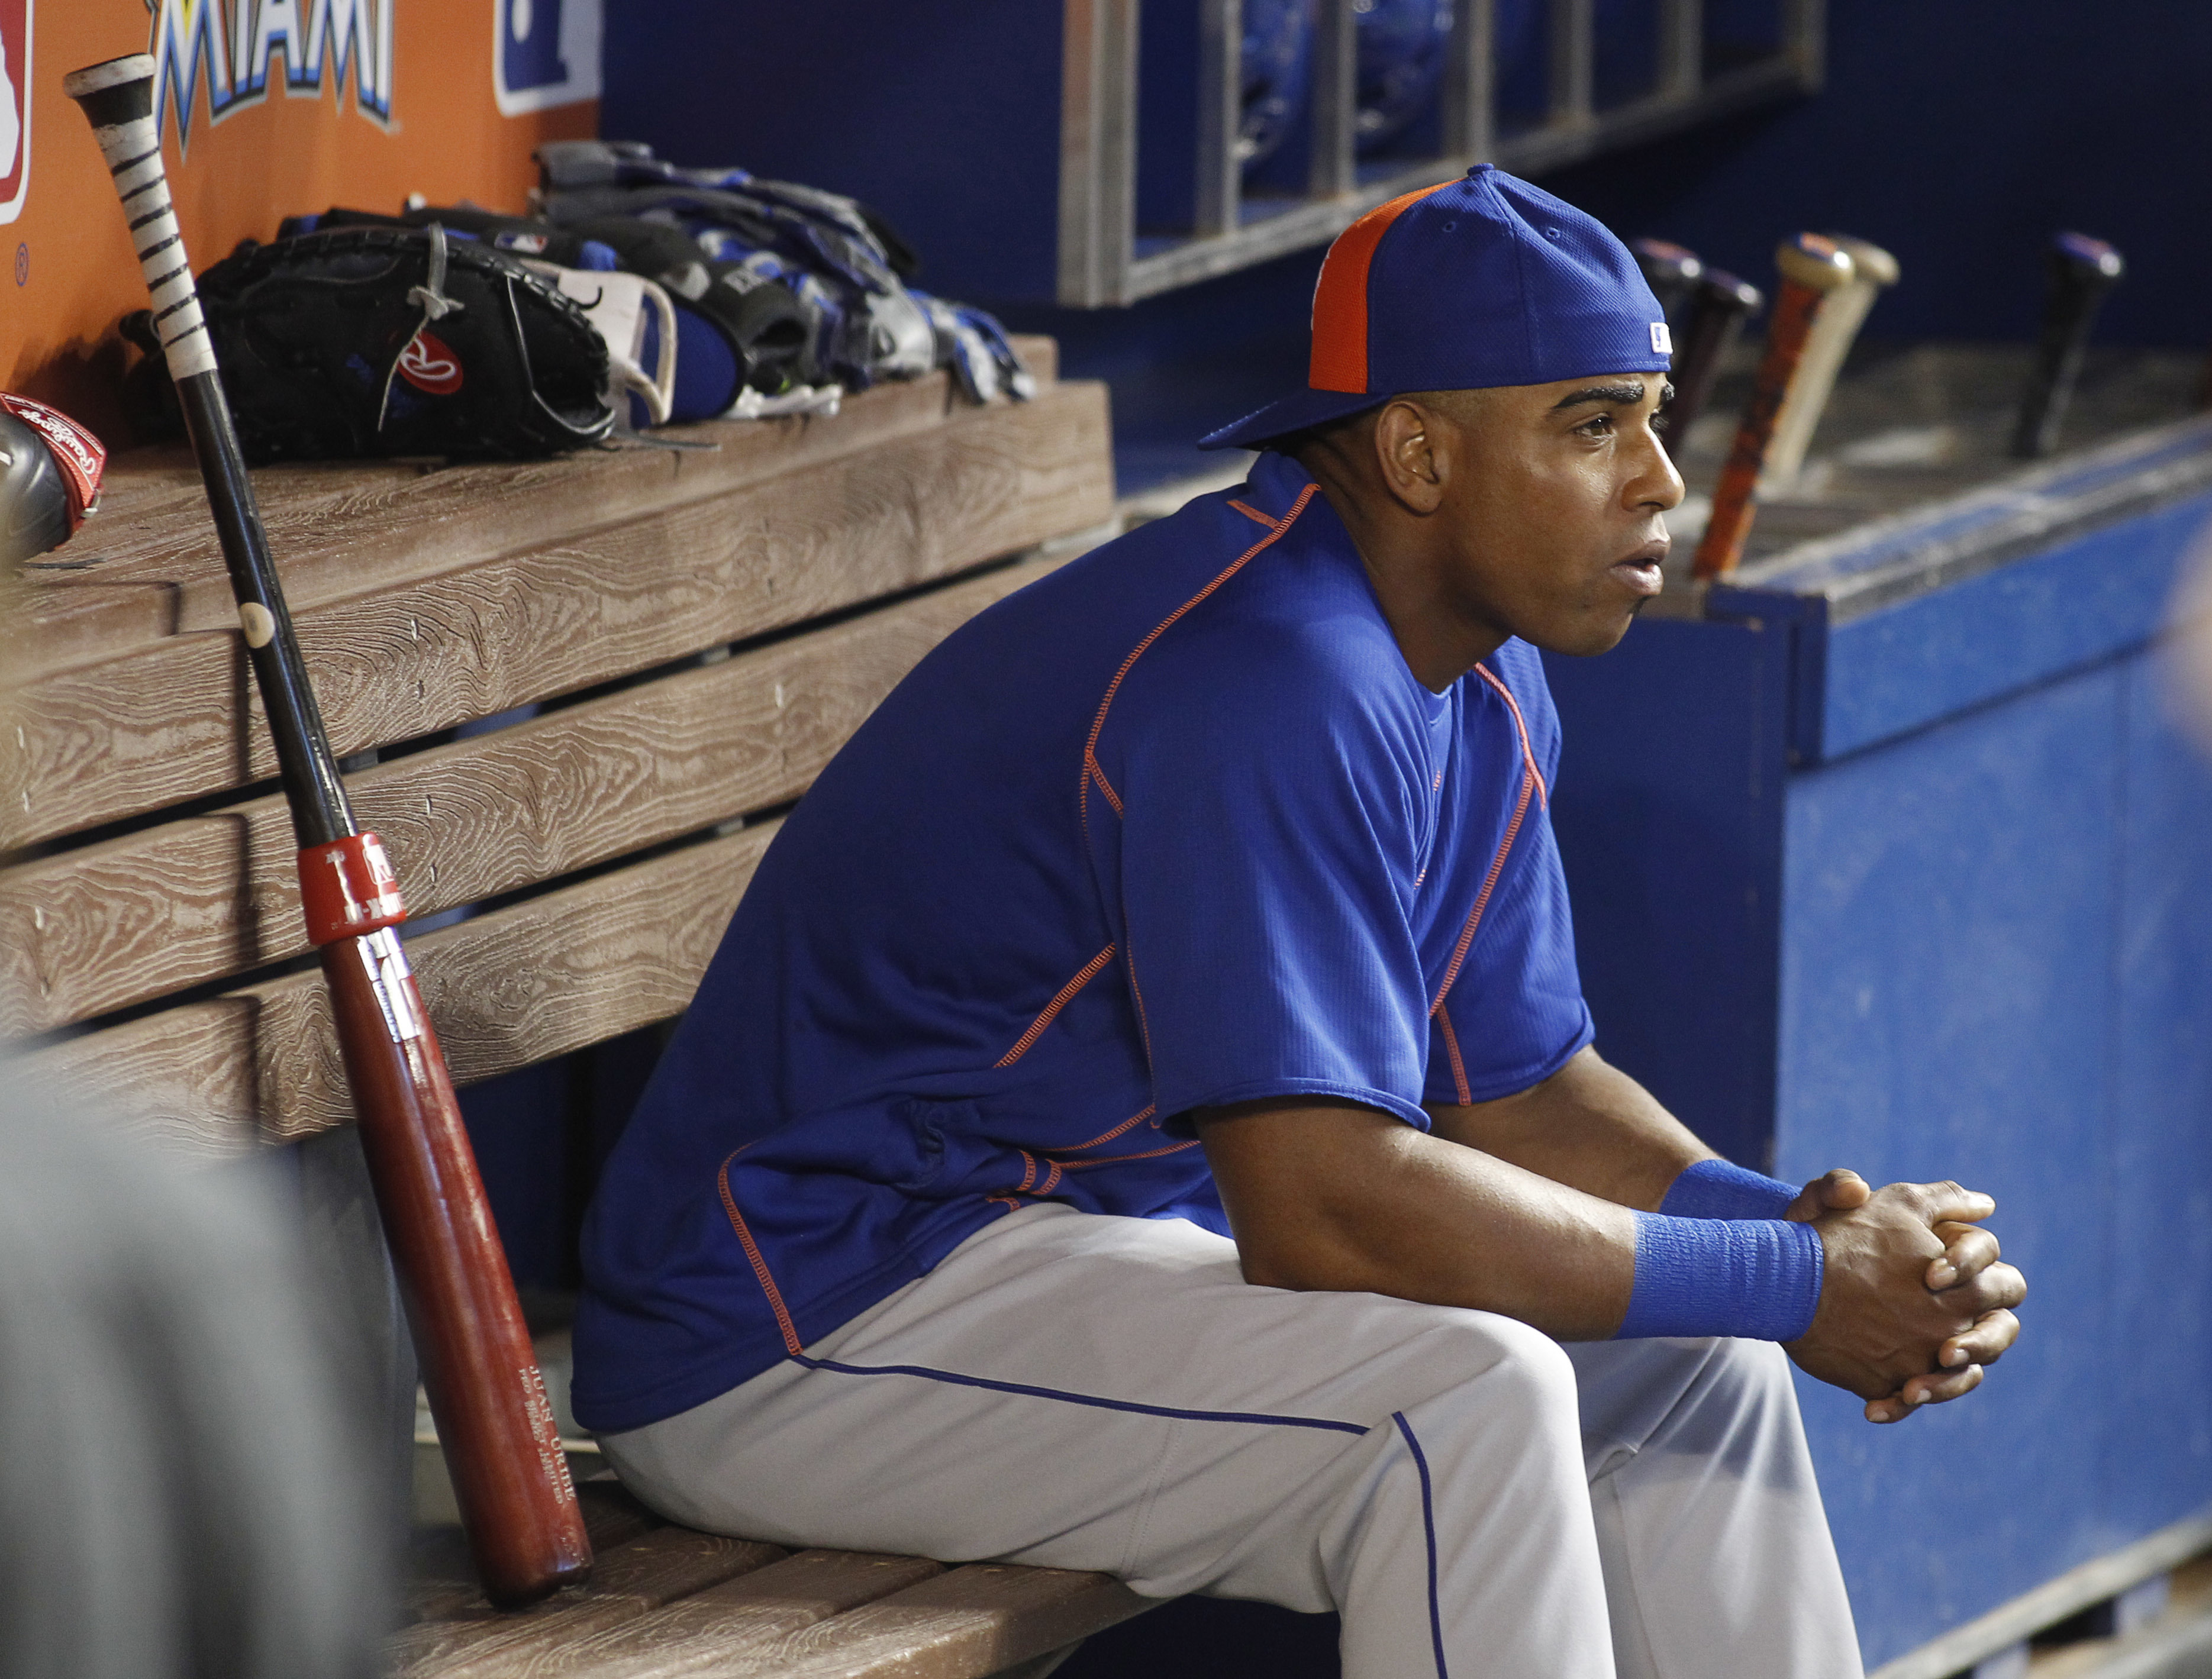 FILE - In this Aug. 5, 2016, file photo, New York Mets center fielder Yoenis Cespedes sits in the dugout before batting practice at a baseball game against the Miami Marlins in Miami. Cespedes is among 10 players to receive $17.2 million qualifying offers